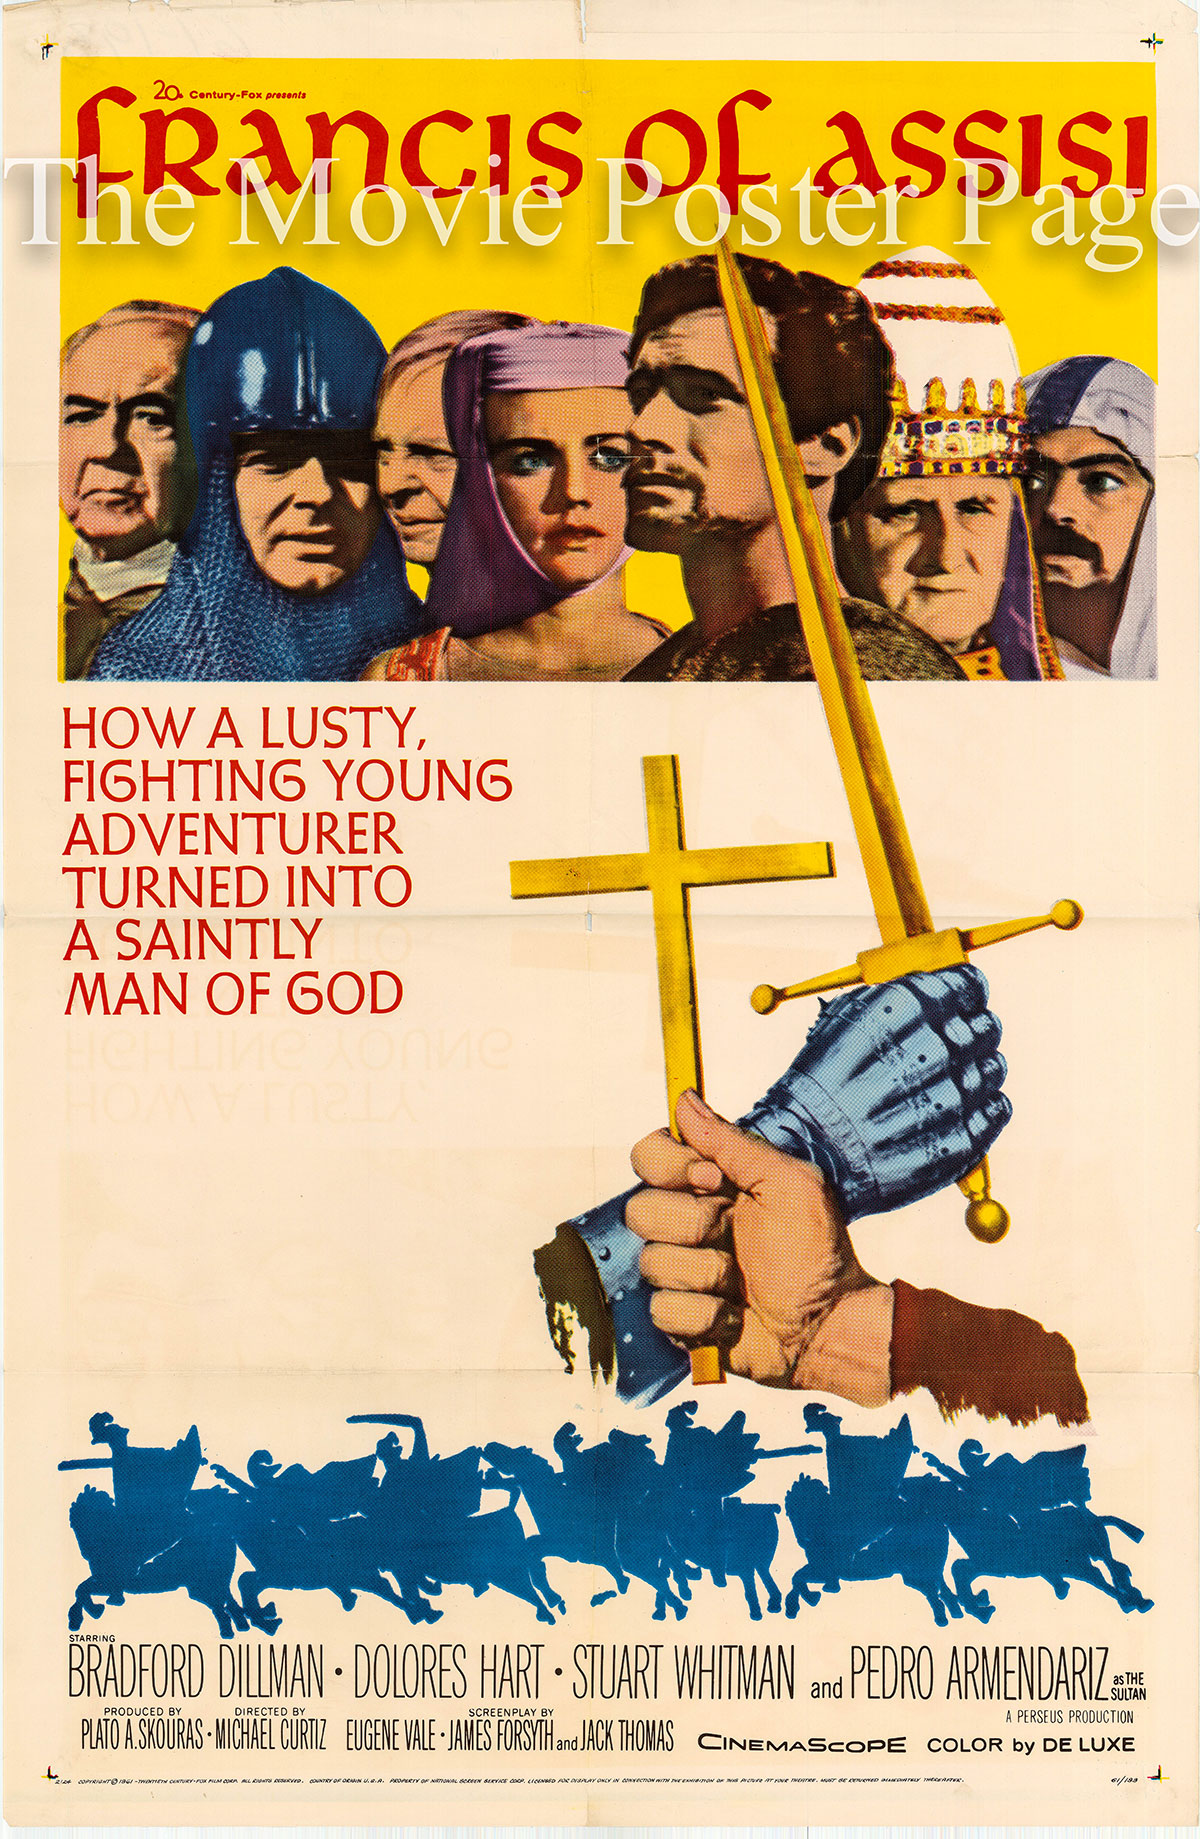 Pictured is a US one-sheet poster for the 1961 Michael Curtiz film Francis of Assisi starring Bradford Dillman as Francis Bernadone of Assisi.